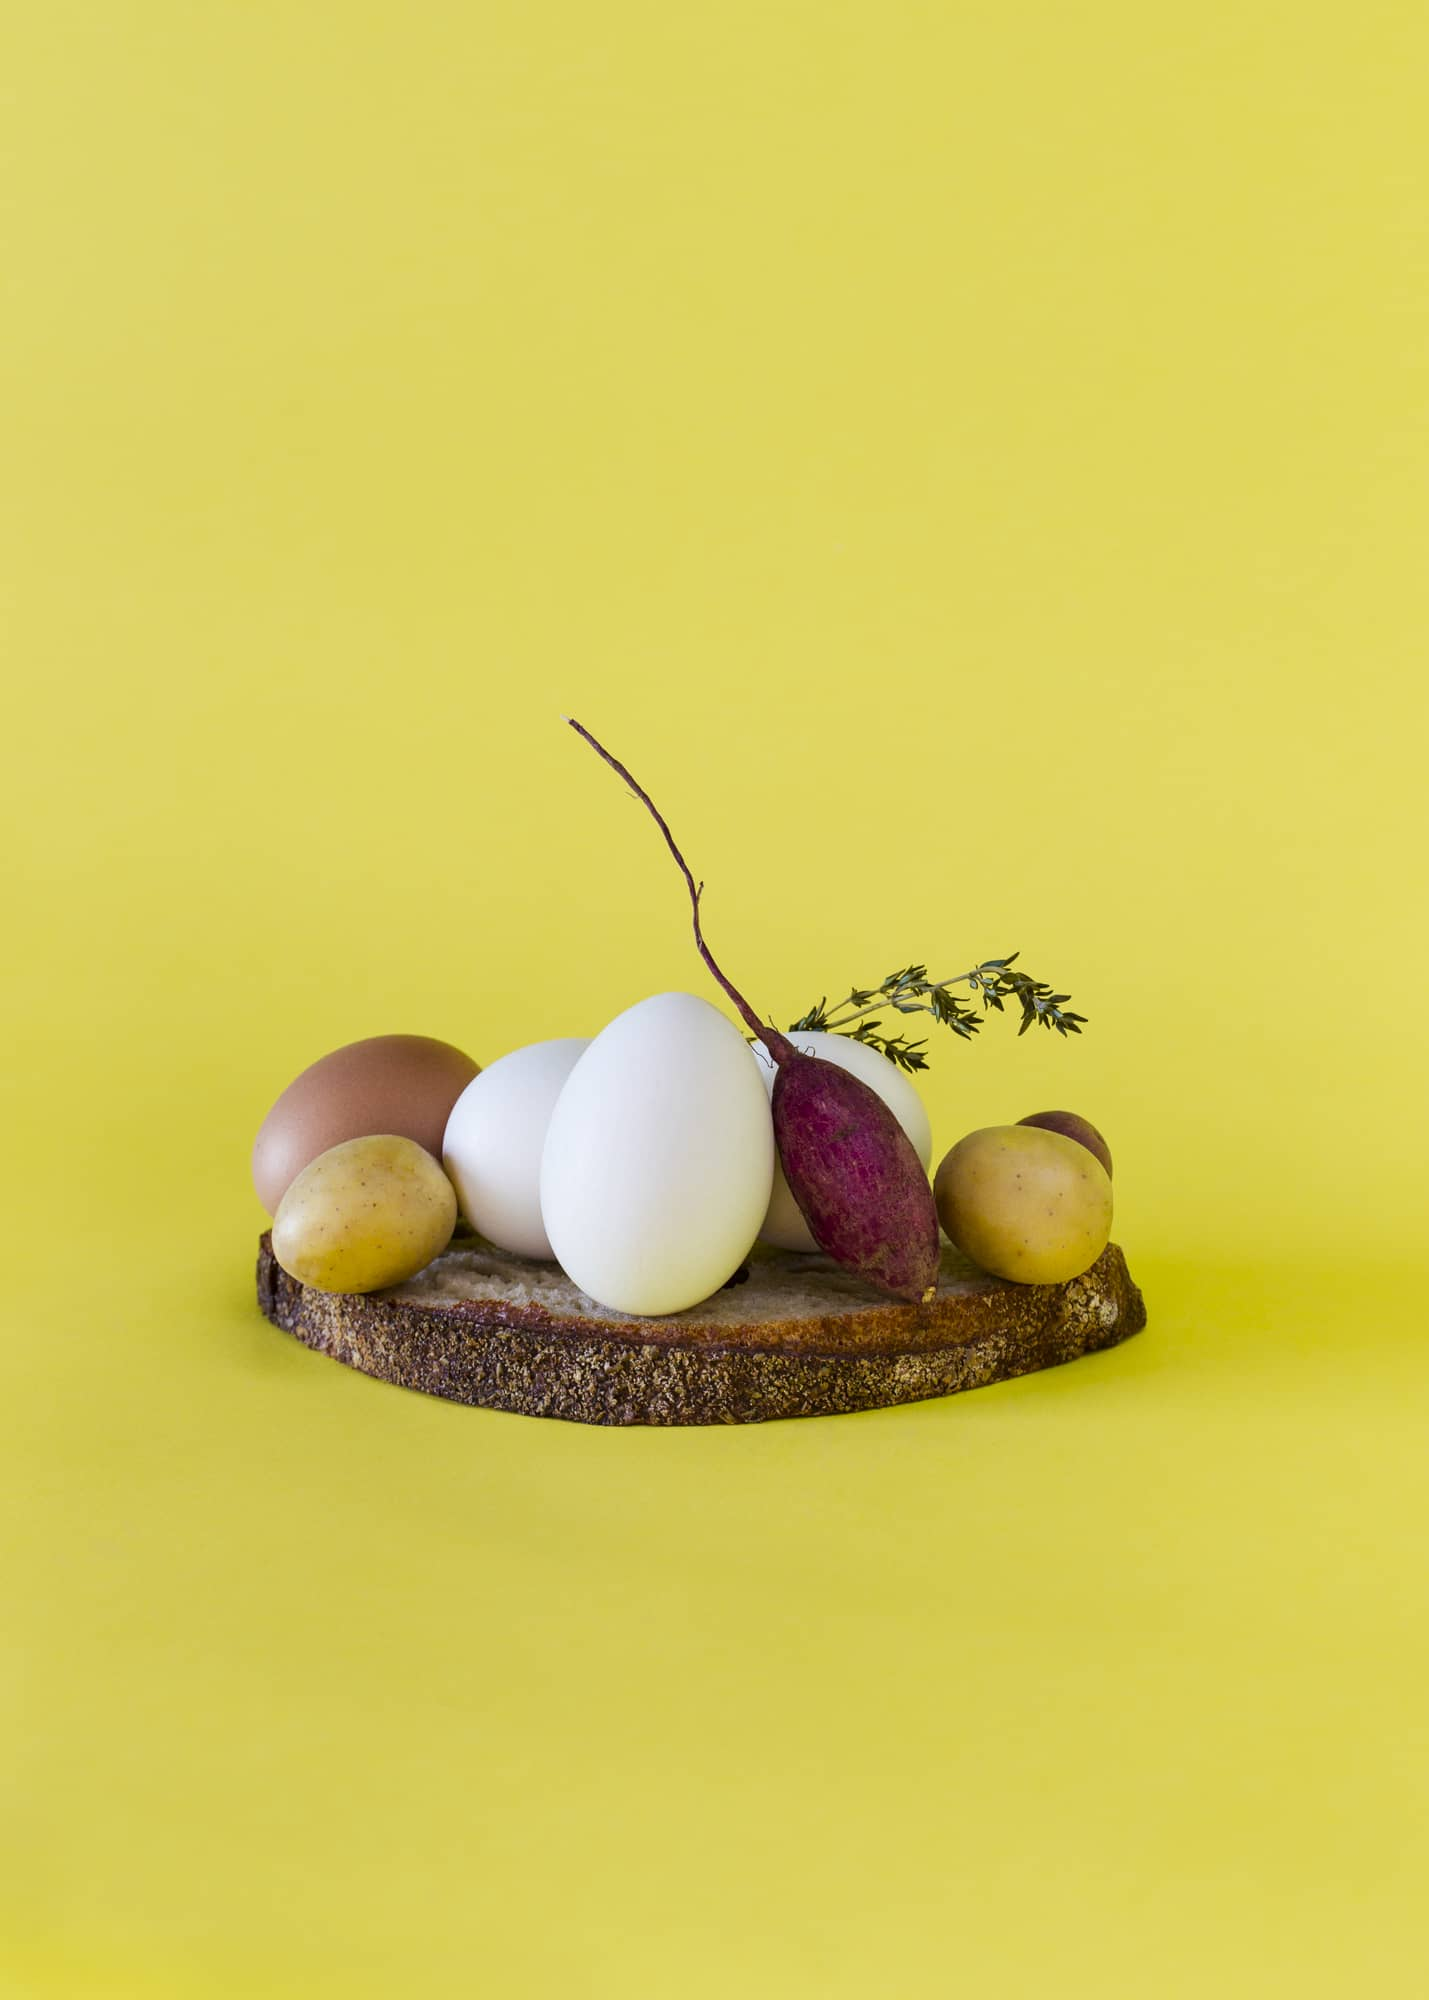 The Living Food Sculptures